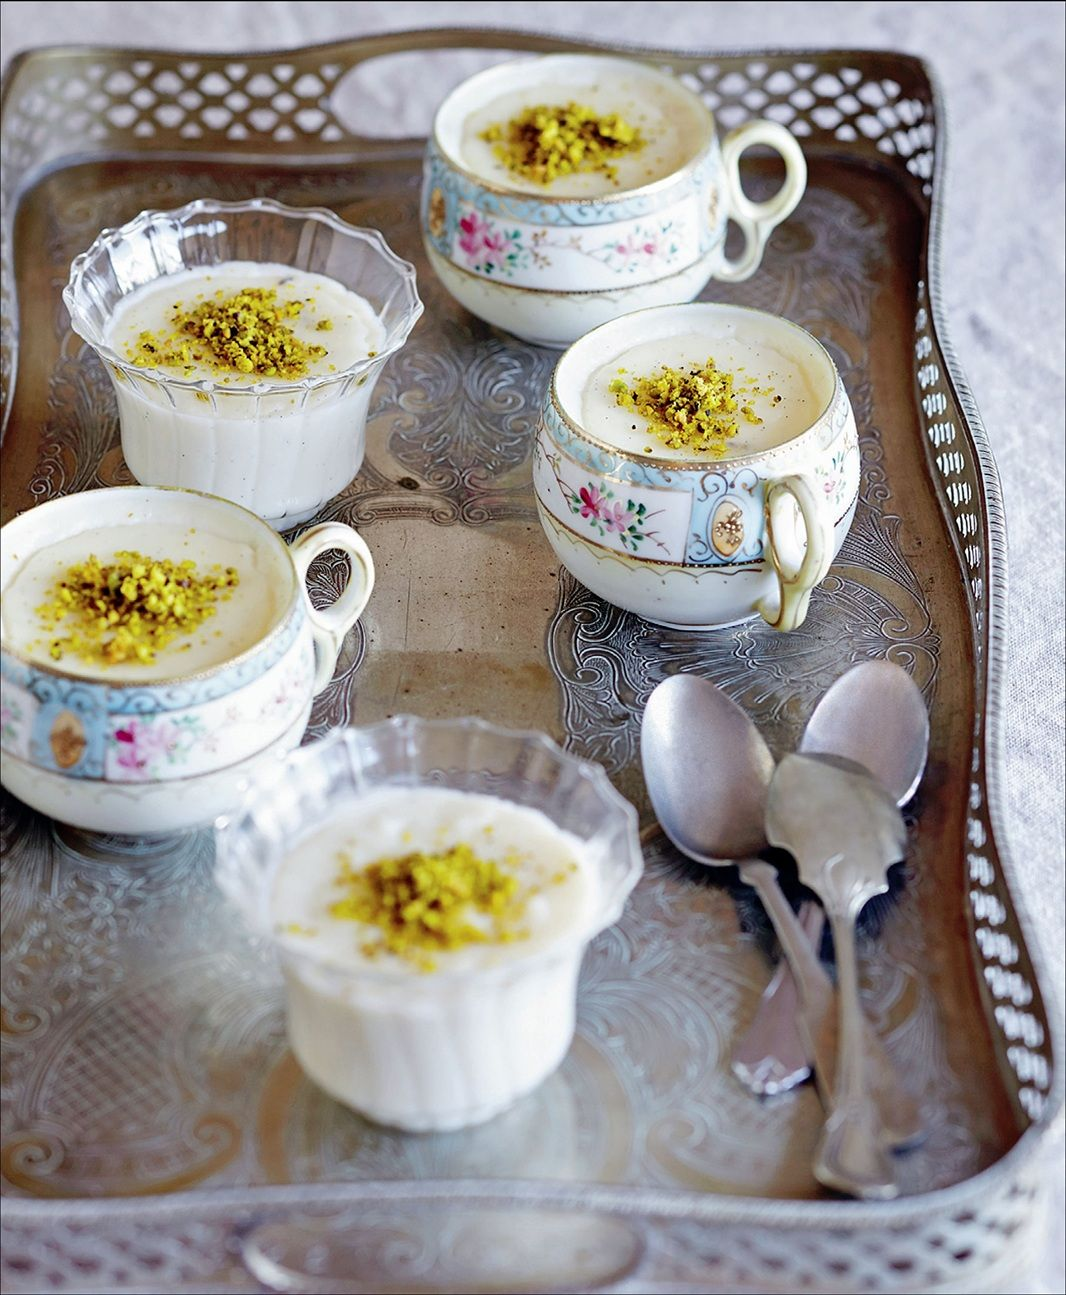 Milk puddings with vanilla and pistachio by Sevtap Yüce | Cooked #dessert #recipe